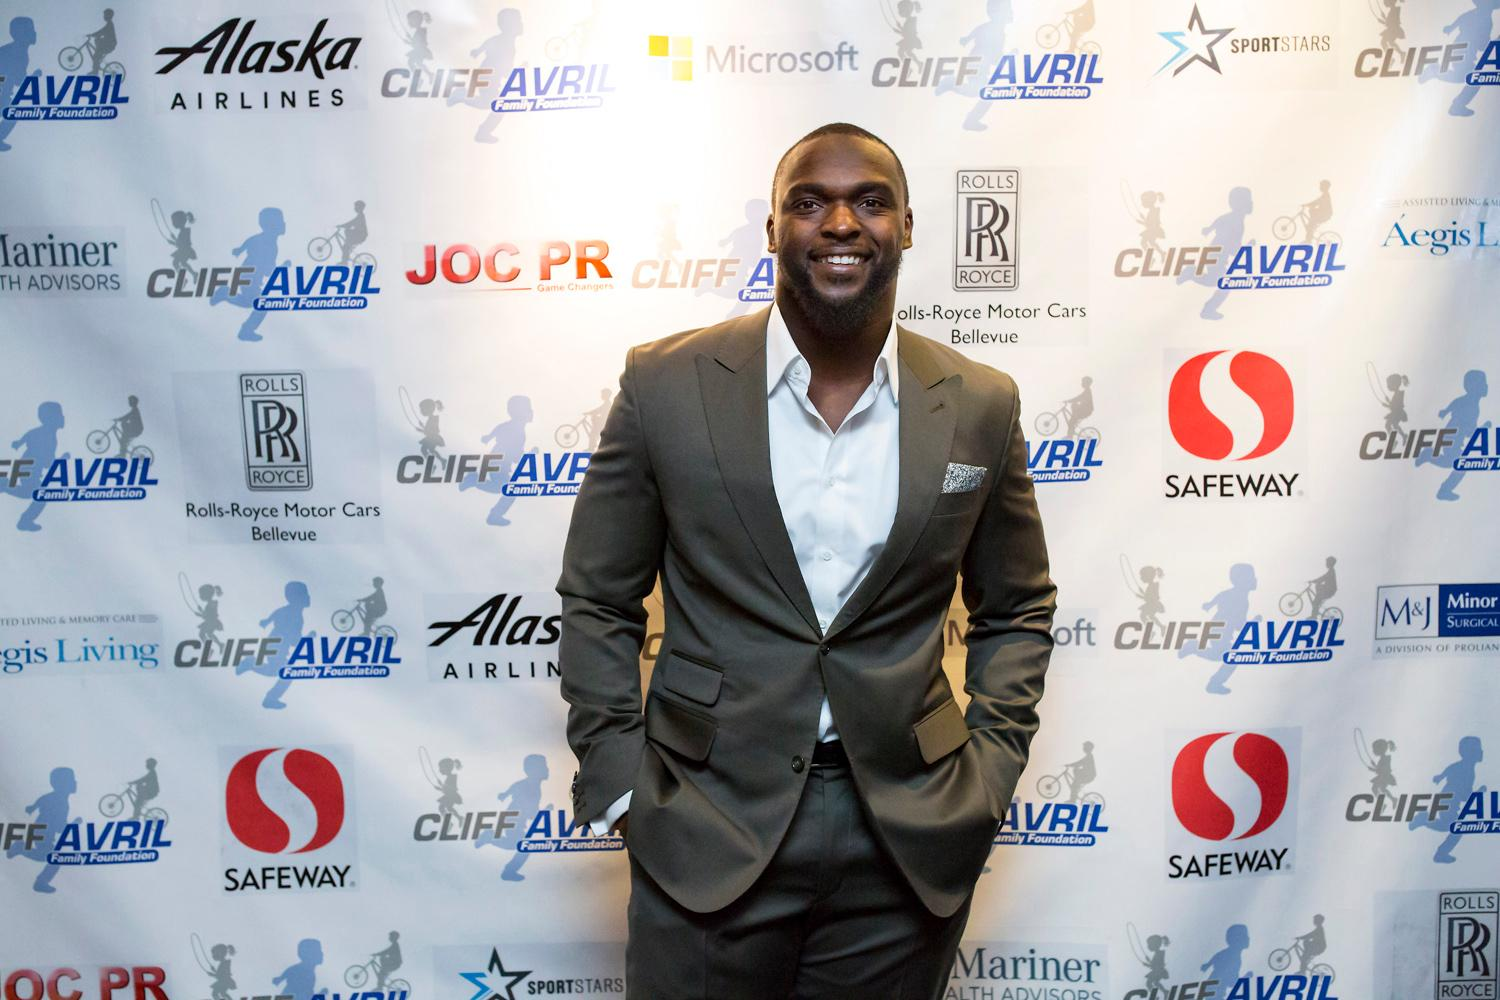 Seattle Seahawk Cliff Avril hosted his fourth annual Dinning To Make A Difference event which benefits the Cliff Avril Family Foundation at the Palisades restaurant Monday night, with guests including Pro Football Hall of Famer Warren Moon, Seattle Mariner Nelson Cruz, and other Seattle Seahawk players. Tickets were solding ranging from $275 for a table of 10 to $750 for a VIP experience that included a specialty cocktail hour with Avril and his teammates. (Sy Bean / Seattle Refined)